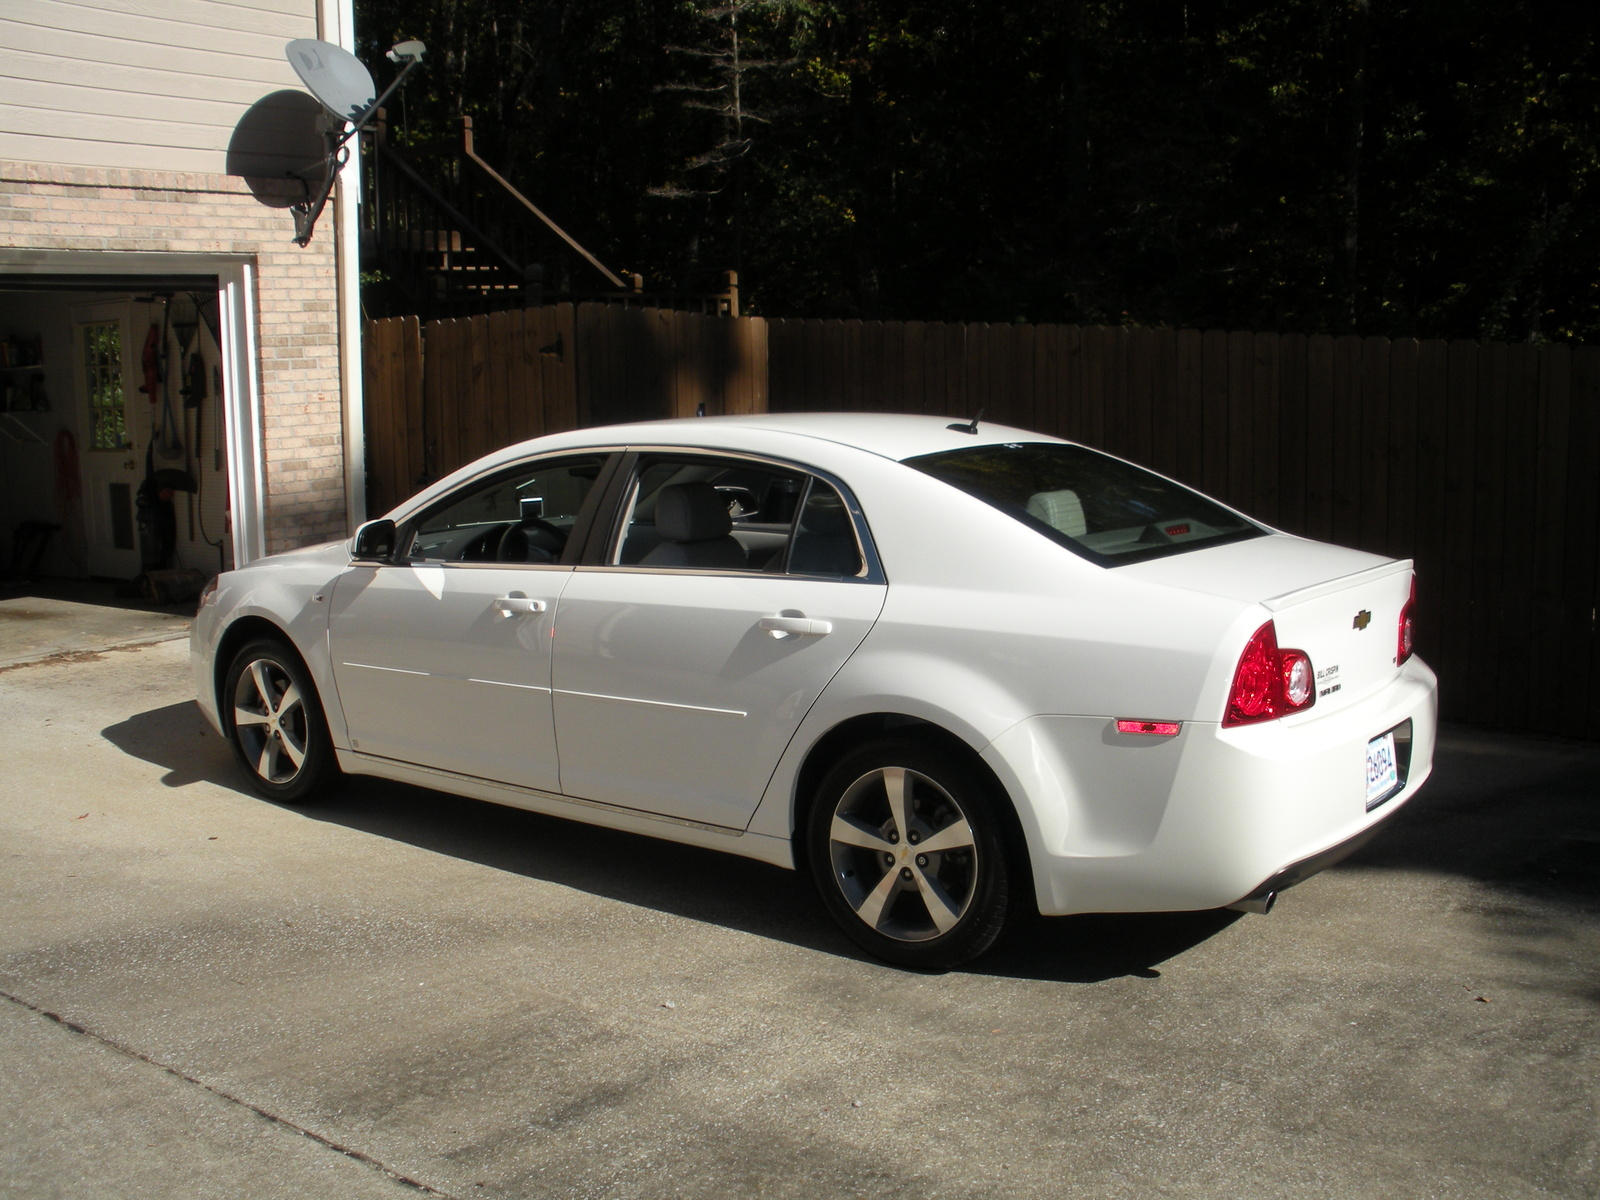 2008 chevy malibu the supreme court diagram lt for sale proteckmachinery